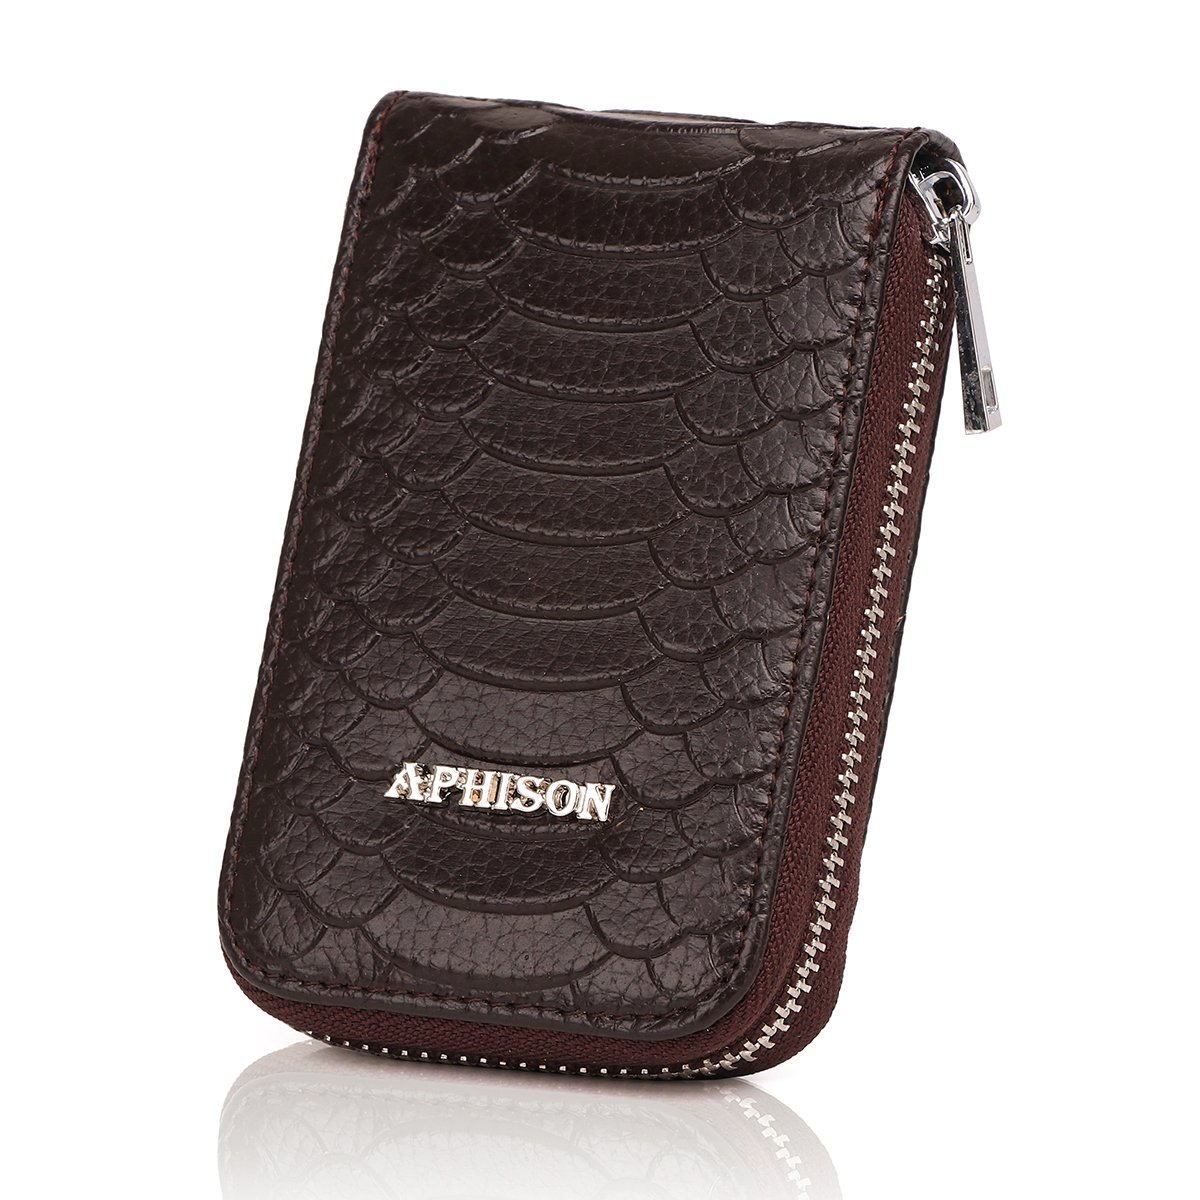 APHISON RFID Blocking Leather Credit Card Holder Case Ladies Minimalist Pocket Wallet Organizer Compact Wallet for Women (COFFEE)